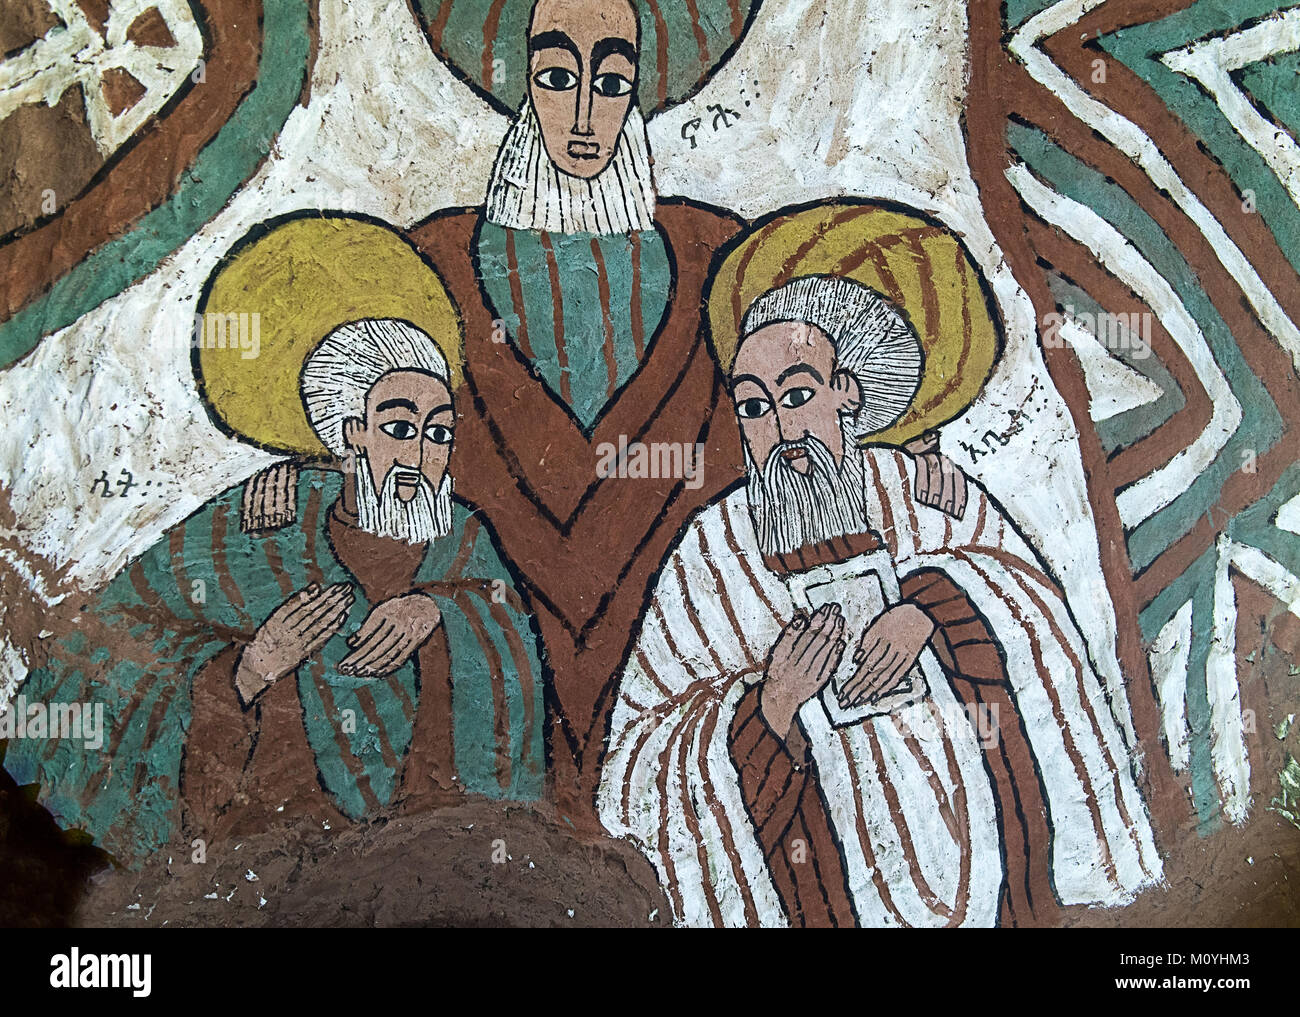 The biblical figures of Seth,Noah and Abel,fresco in the Orthodox rock church of Abuna Yemata Guh,Gheralta Region,Tigray - Stock Image